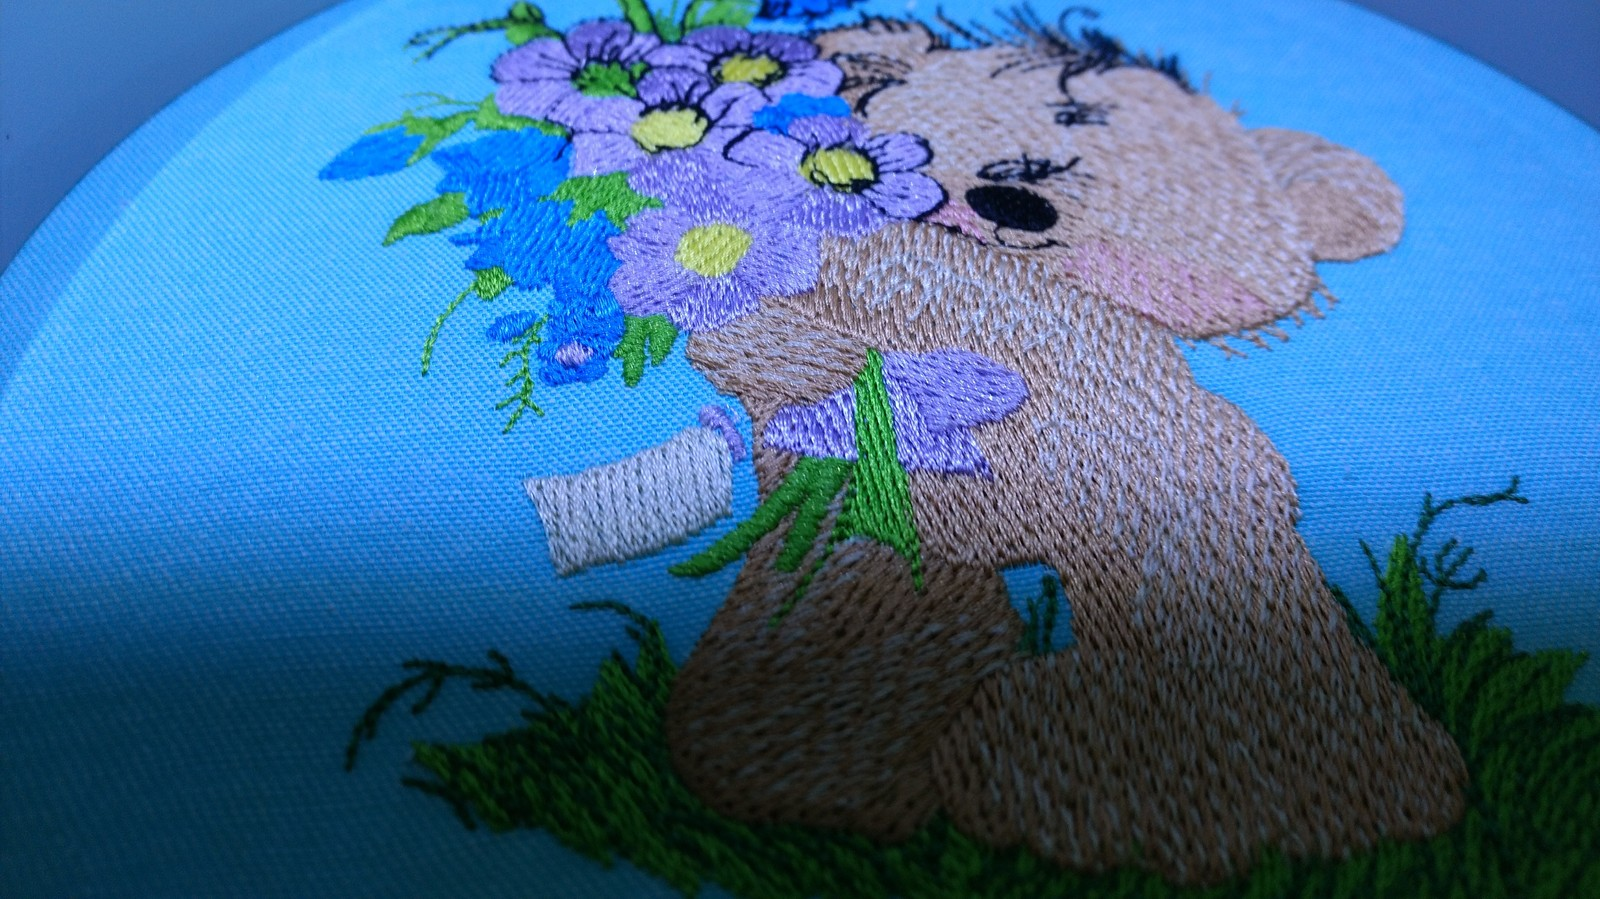 Teddy bear embroidery process